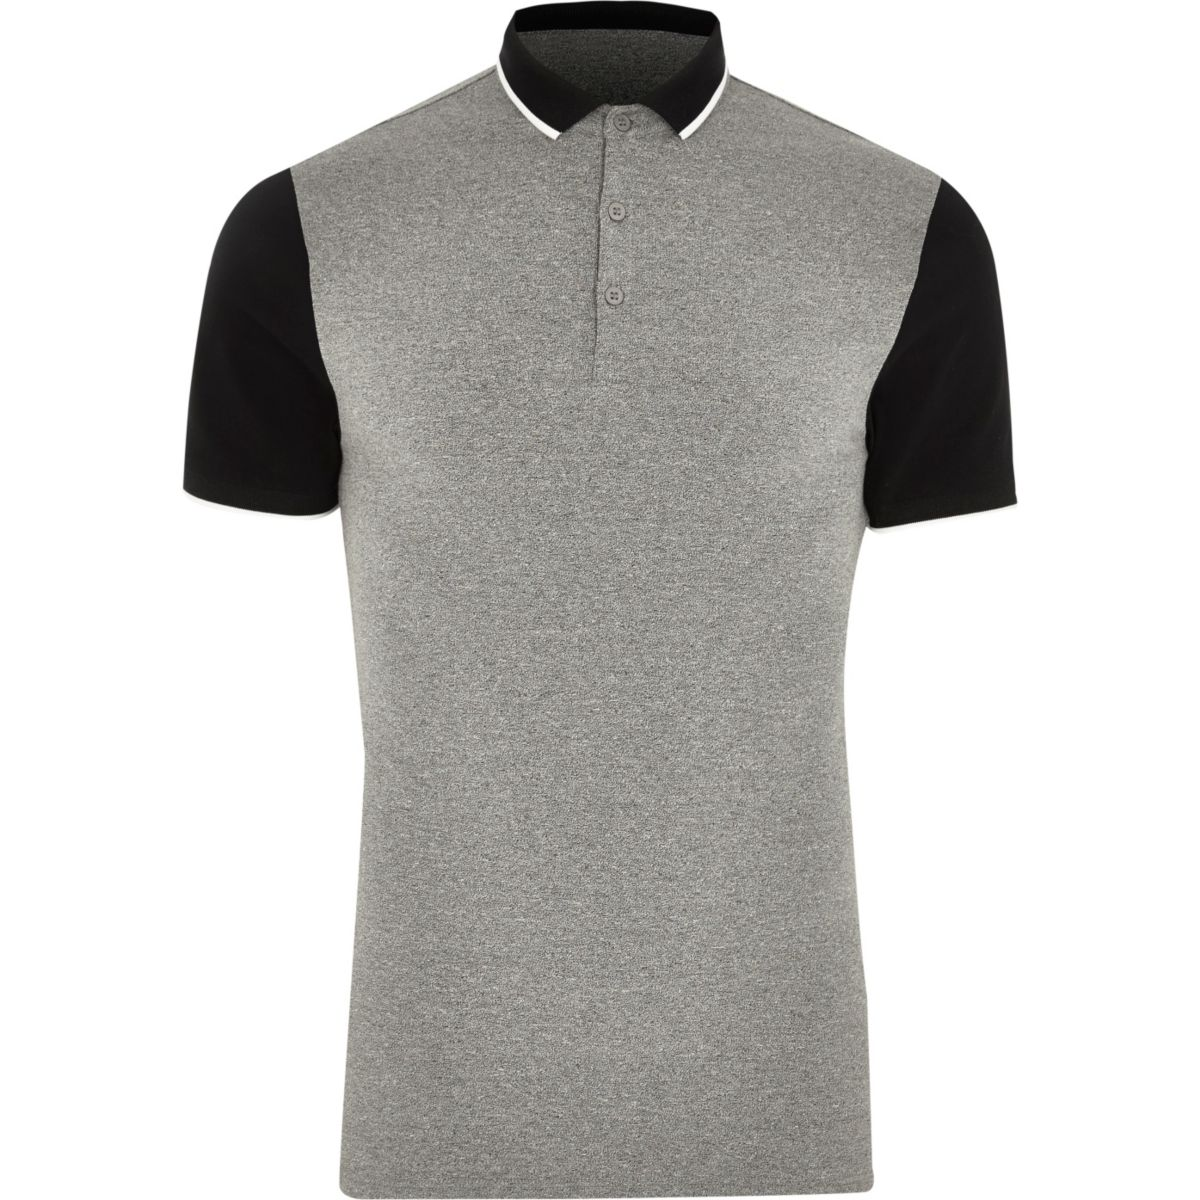 Grey contrast sleeve muscle fit polo shirt